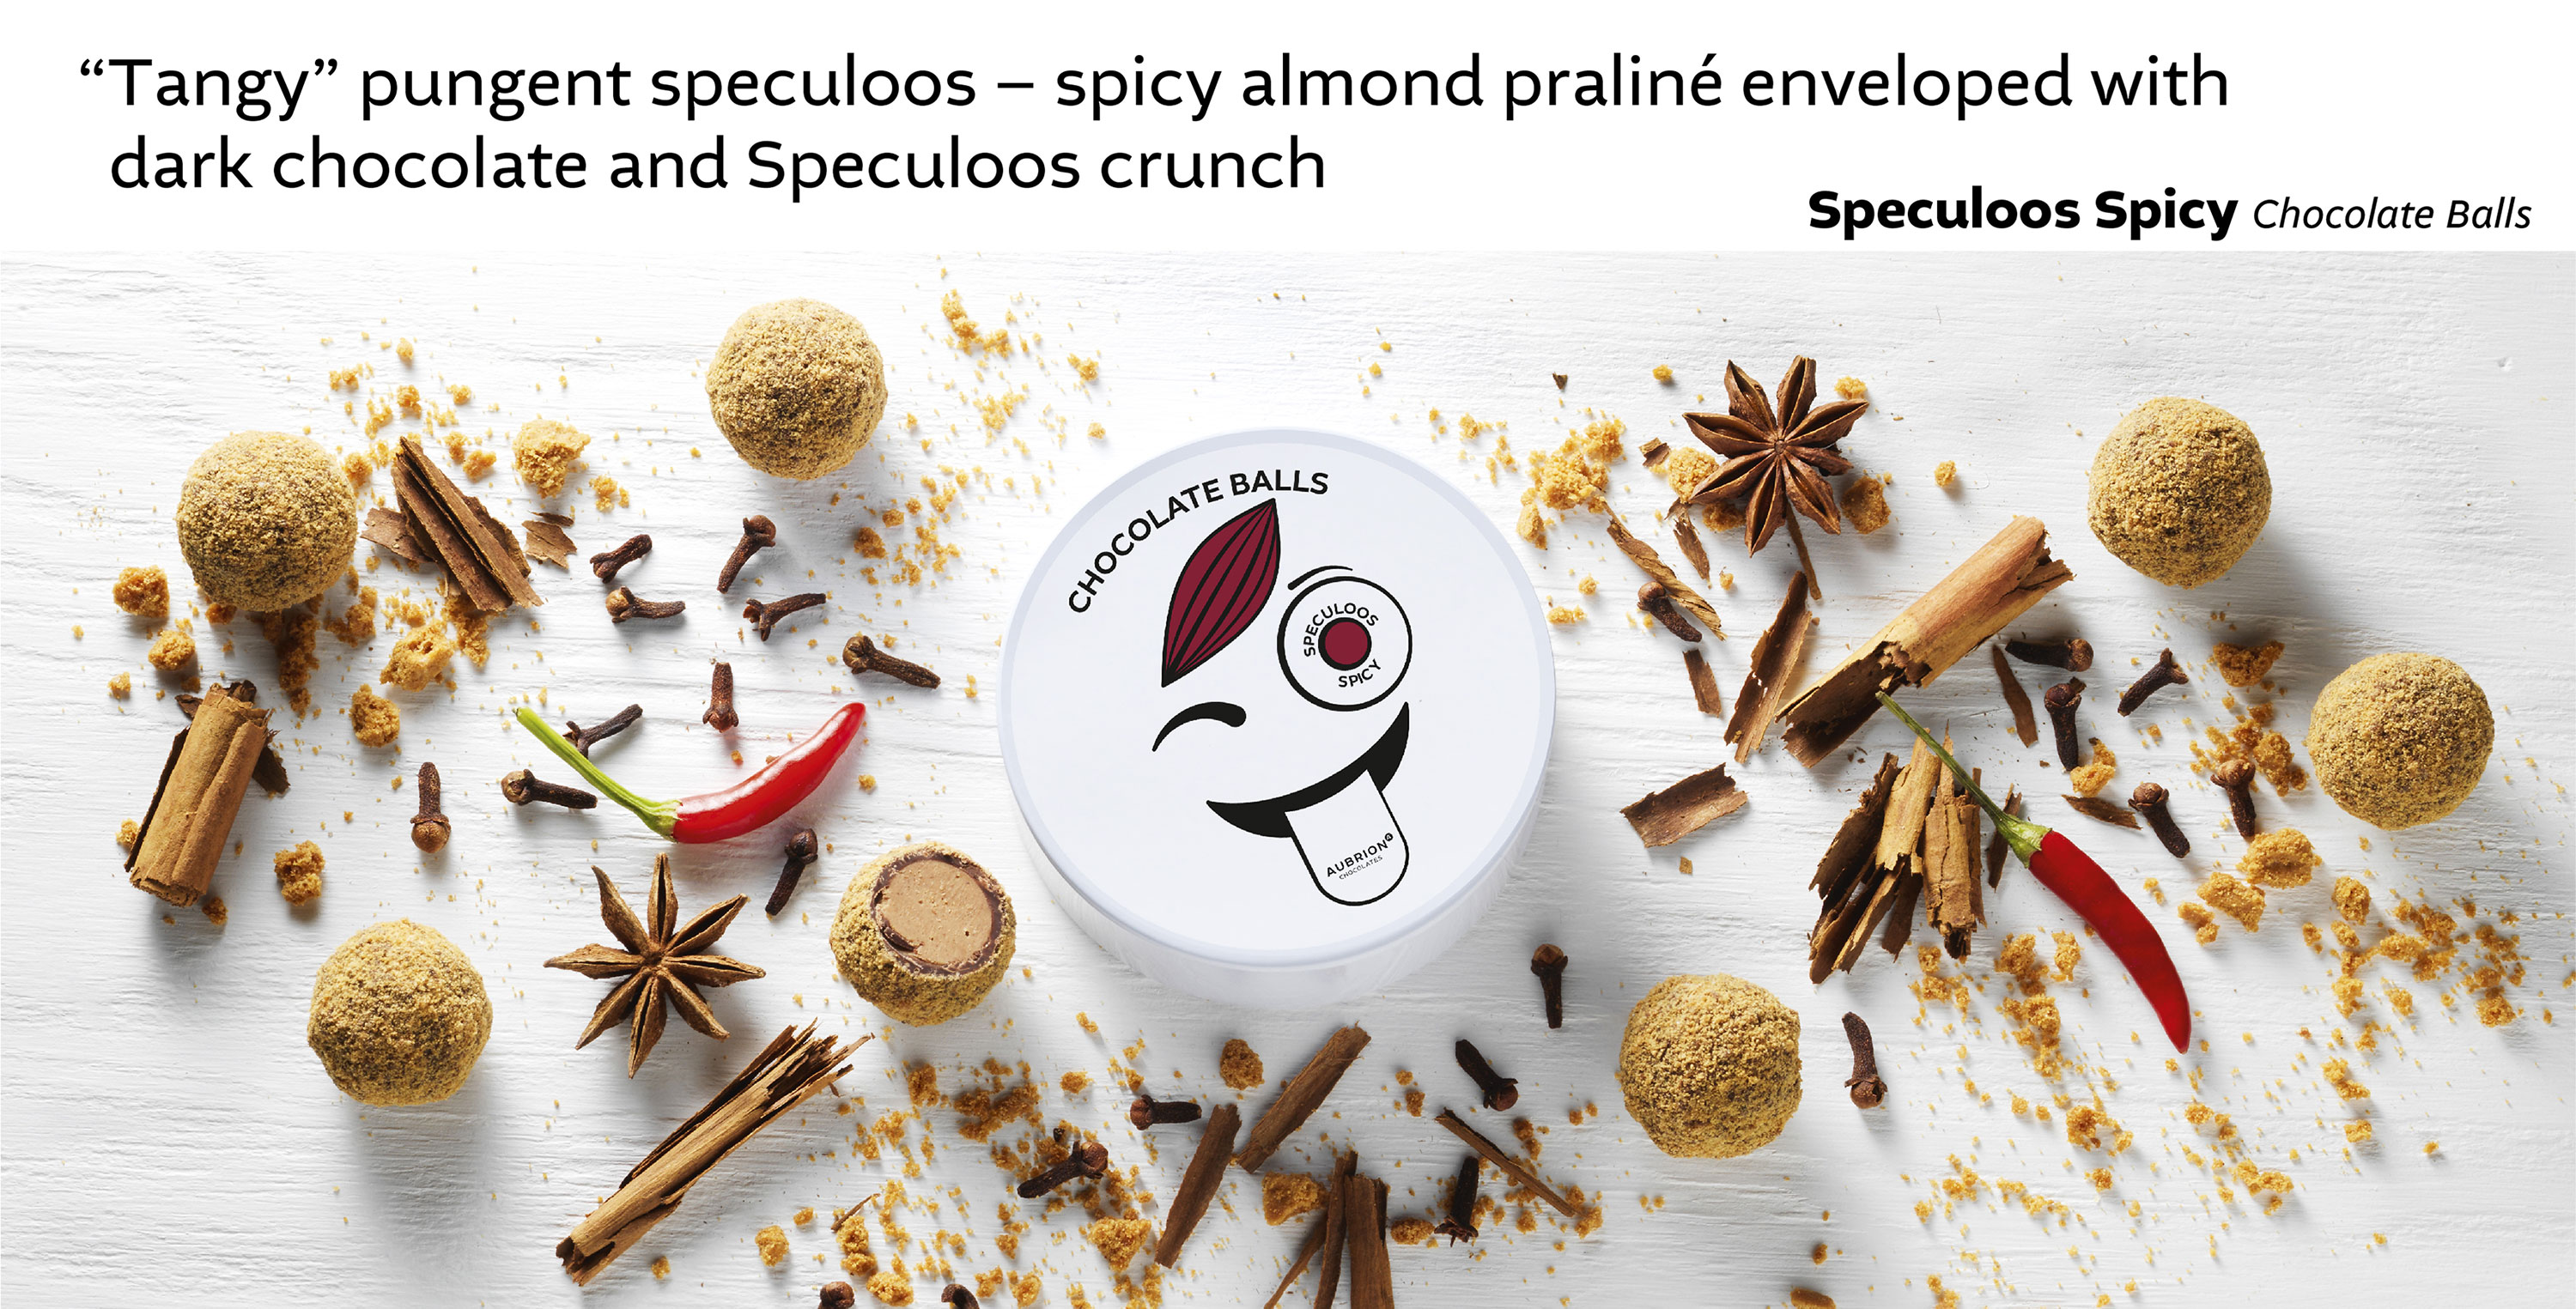 Tangy pungent speculoos-spicy almond praliné enveloped with dark chocolate and Speculoos crunch - Speculoos Spicy Chocolate Balls